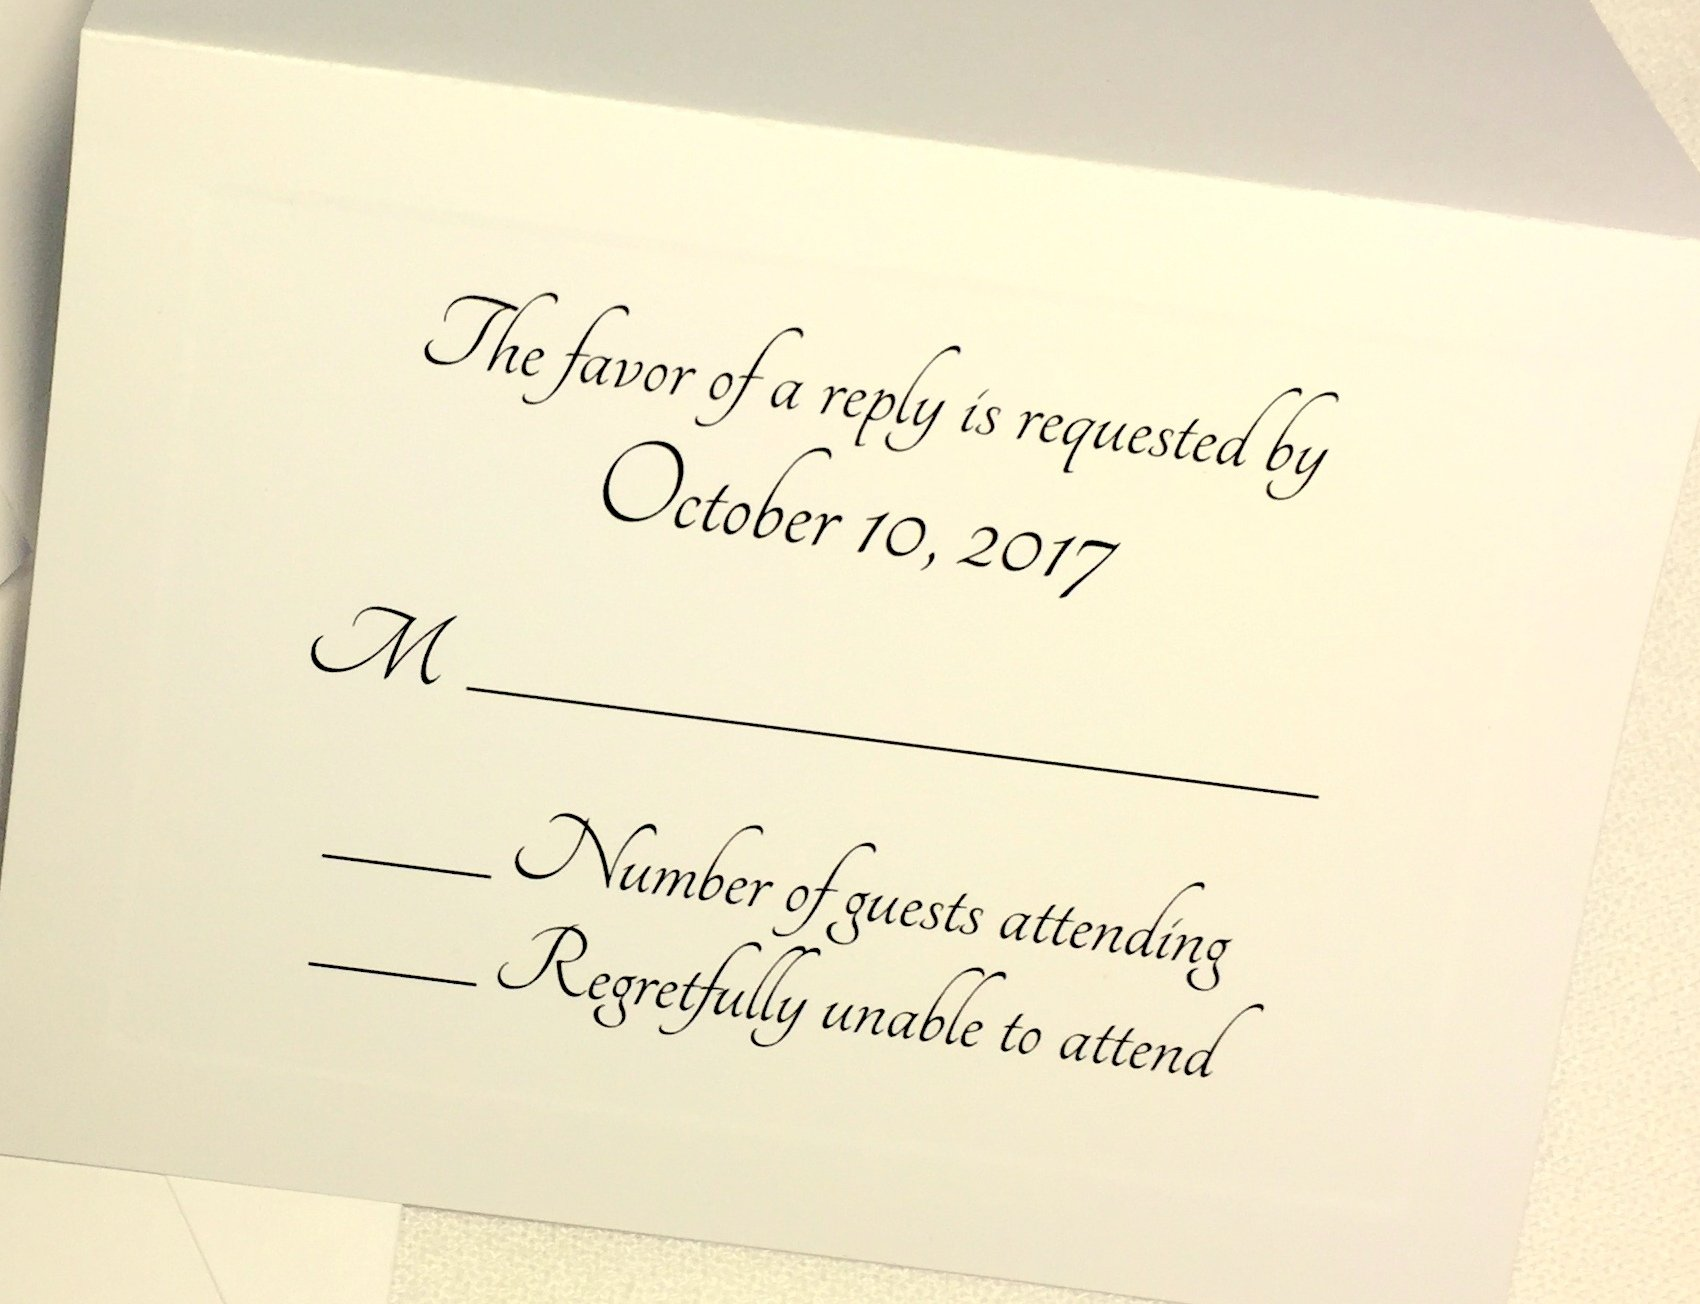 50 Custom RSVP Response Cards with Envelopes. IVORY cards with elegant raised panel edging. Personalized Wedding, Anniversary, Party RSVP. Several Font Choices. Fold Tent Style. (Modern Flair)